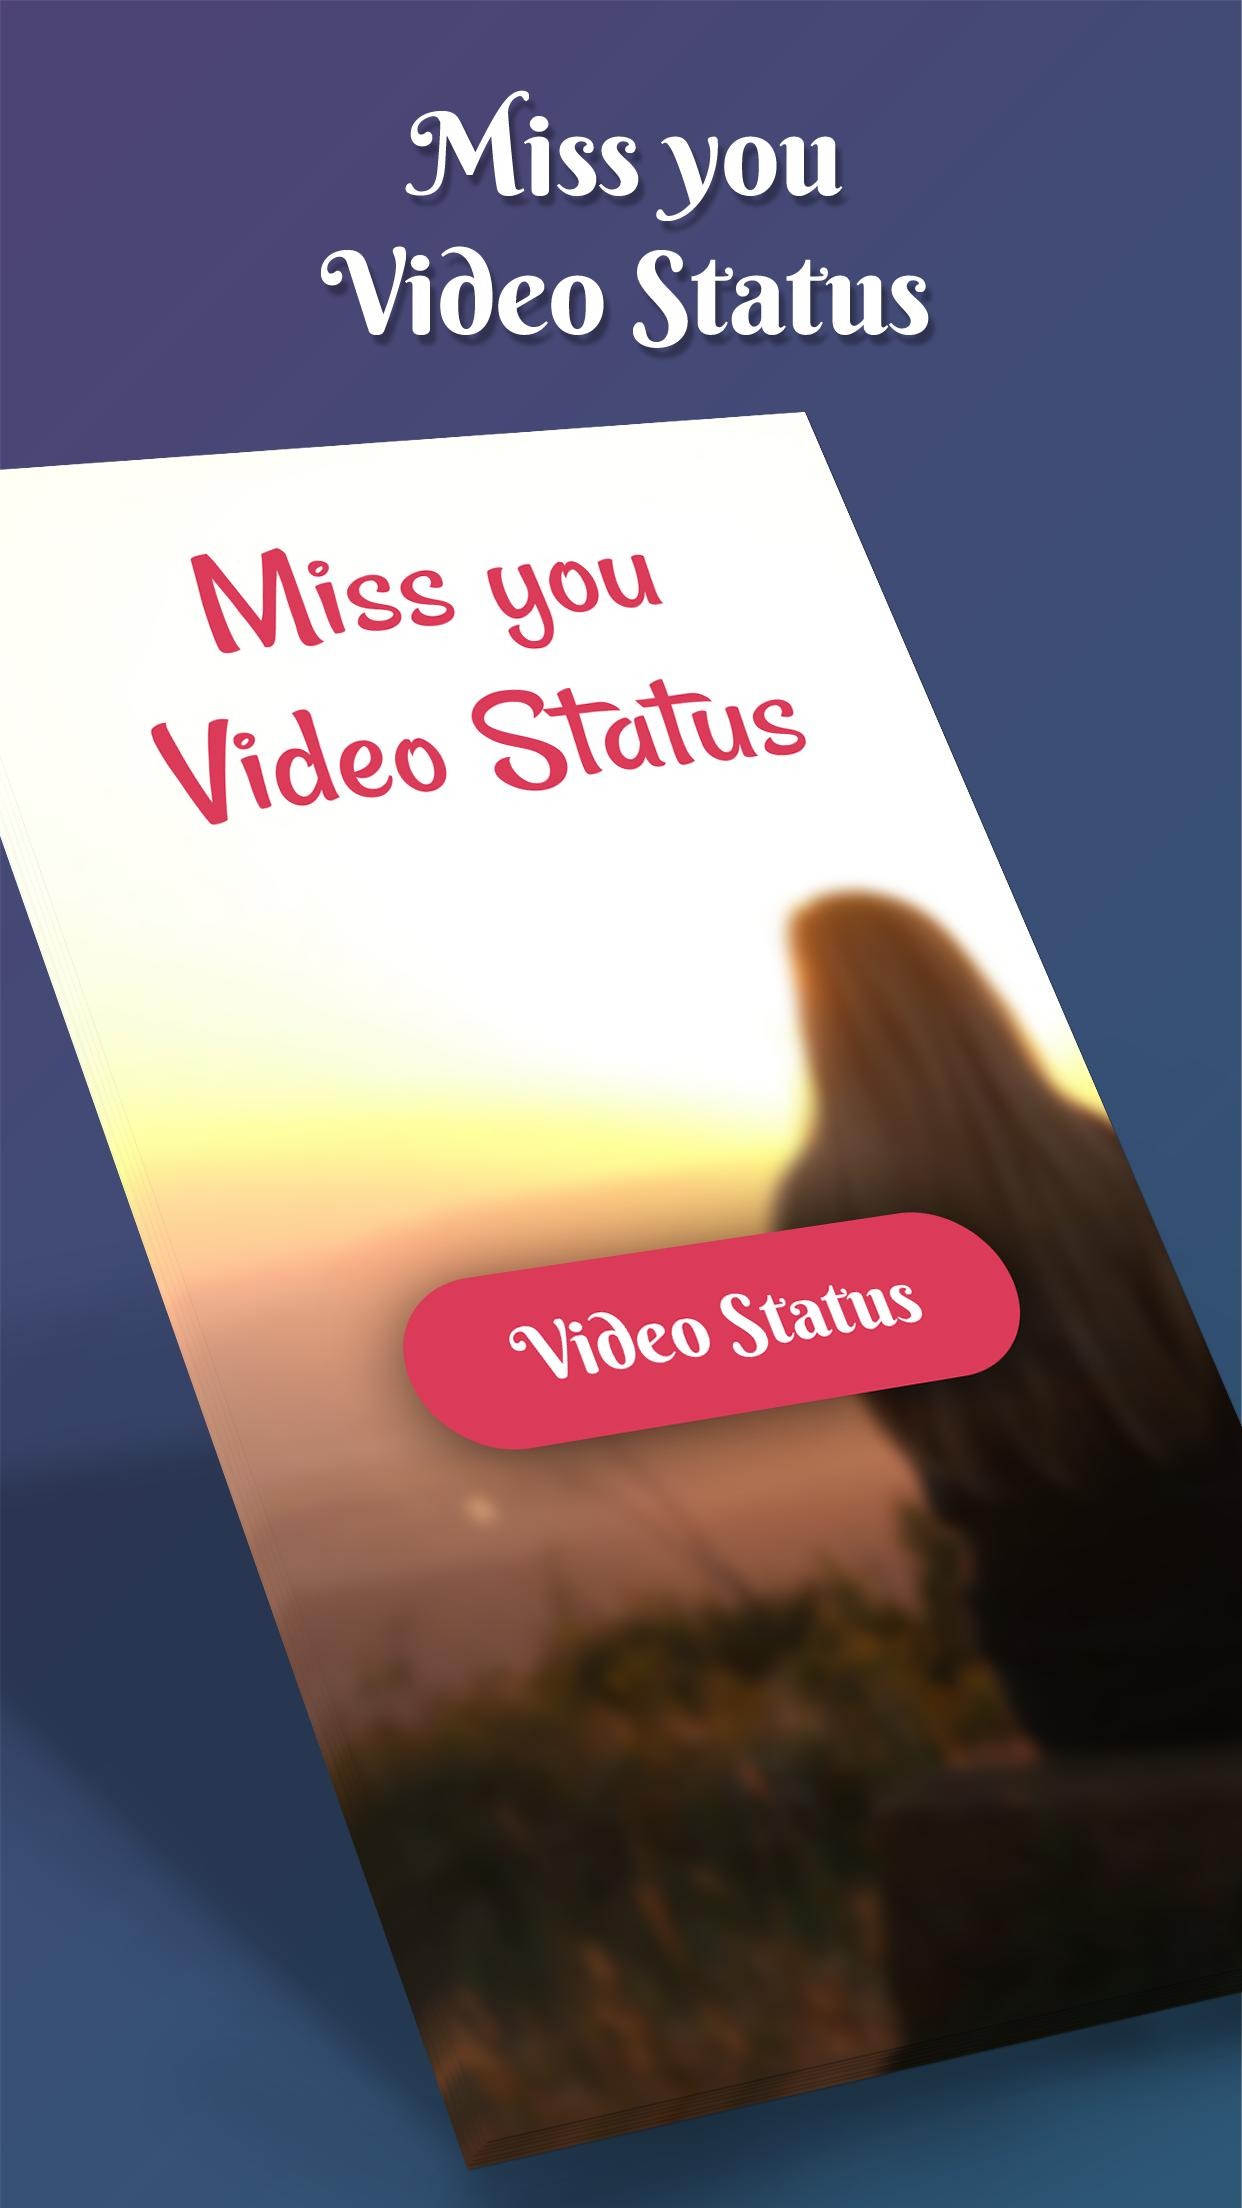 Miss you Video Status 2019 for Android - APK Download